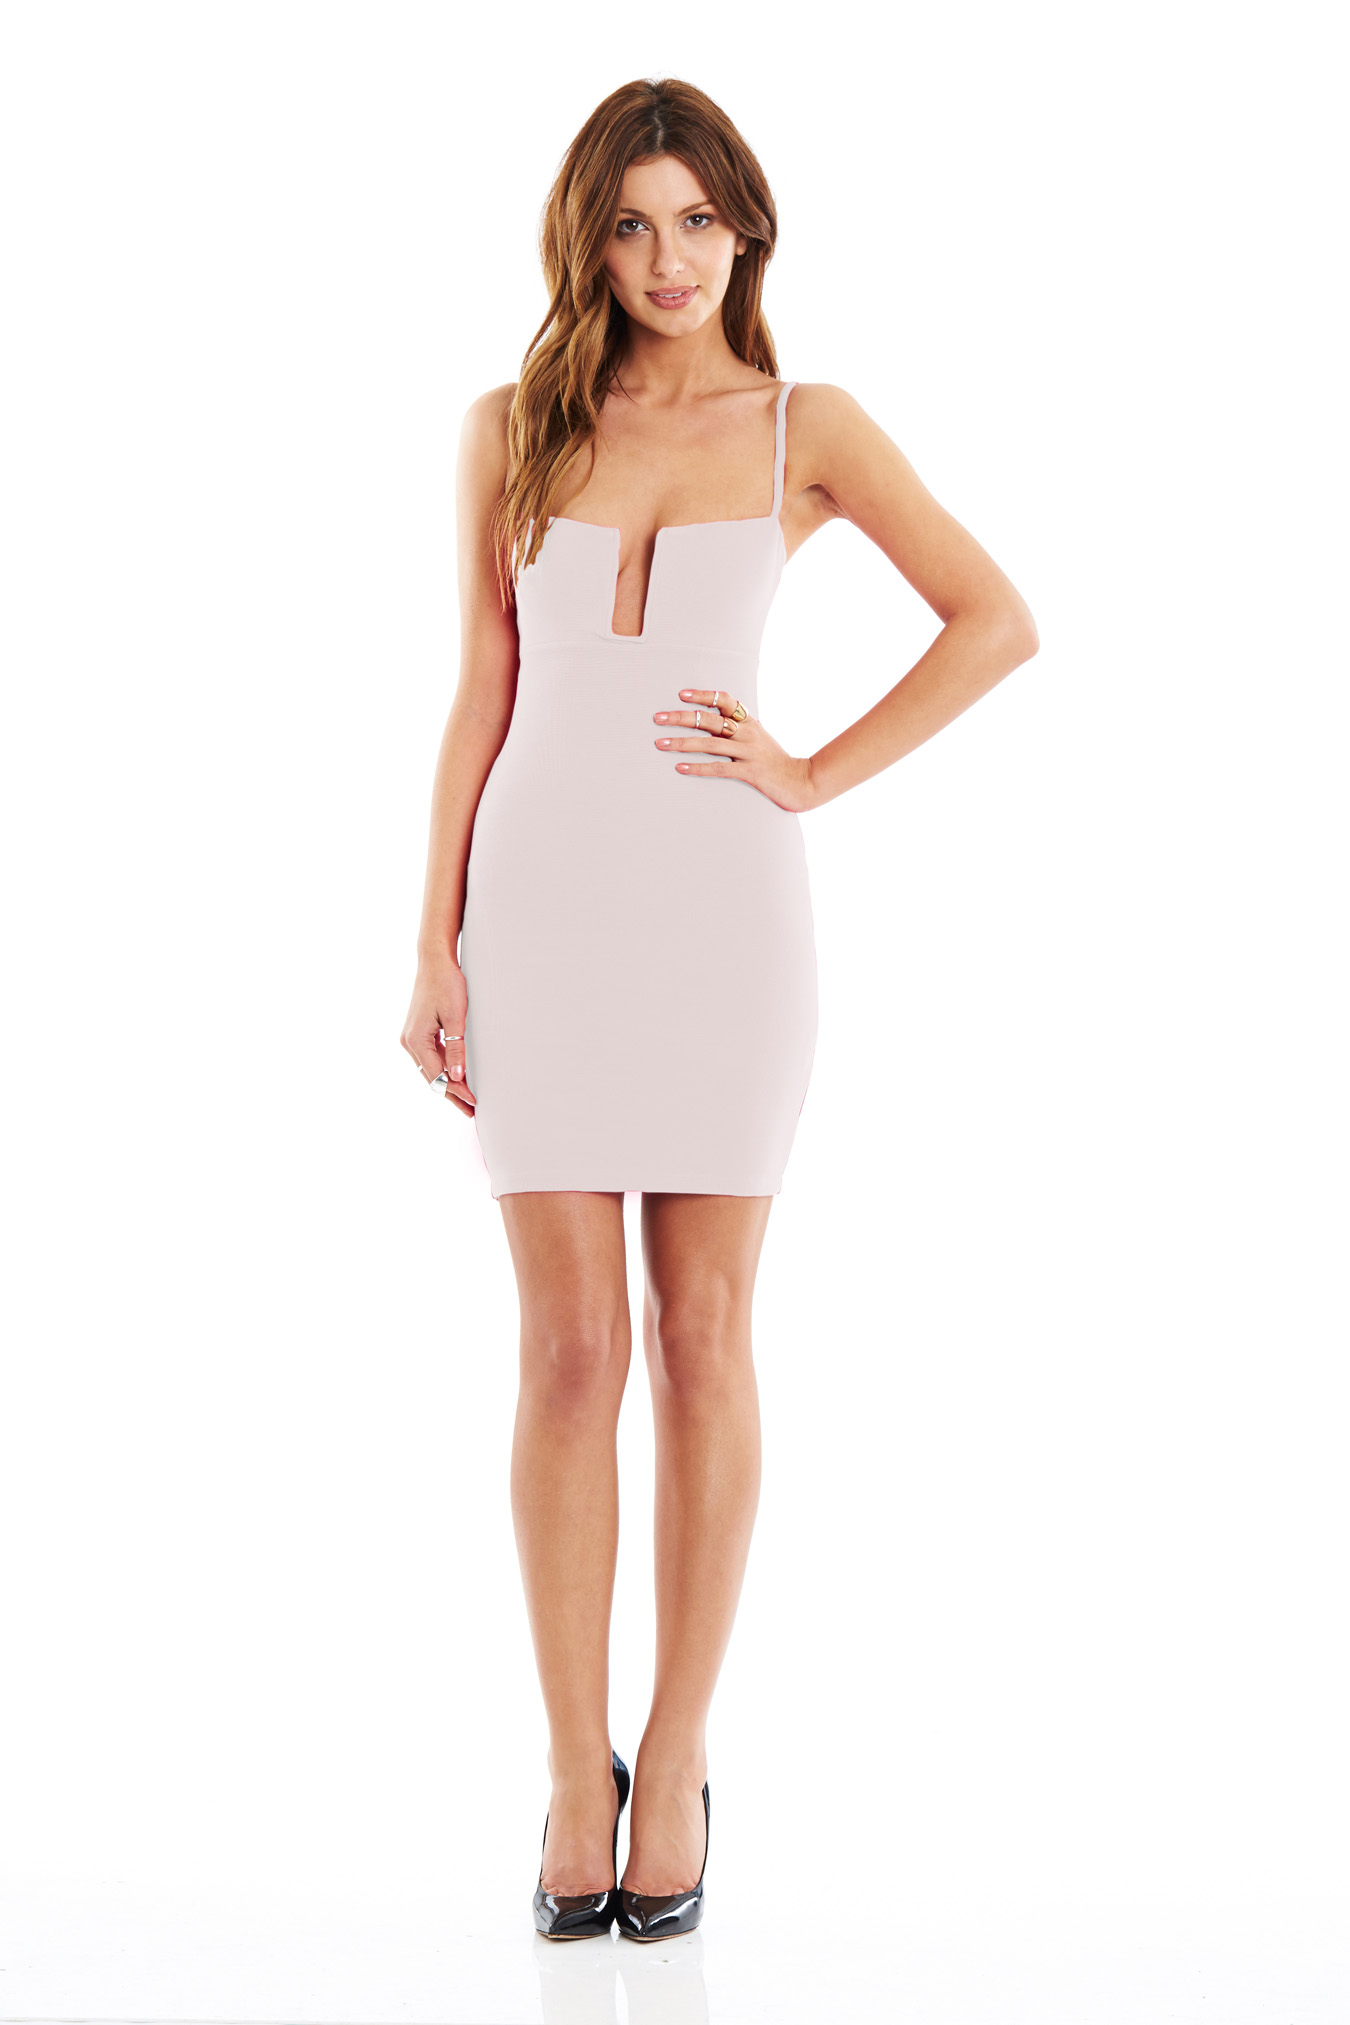 New Nude Stadium Bustier Dress : Buy Designer Dresses Online at Nookie